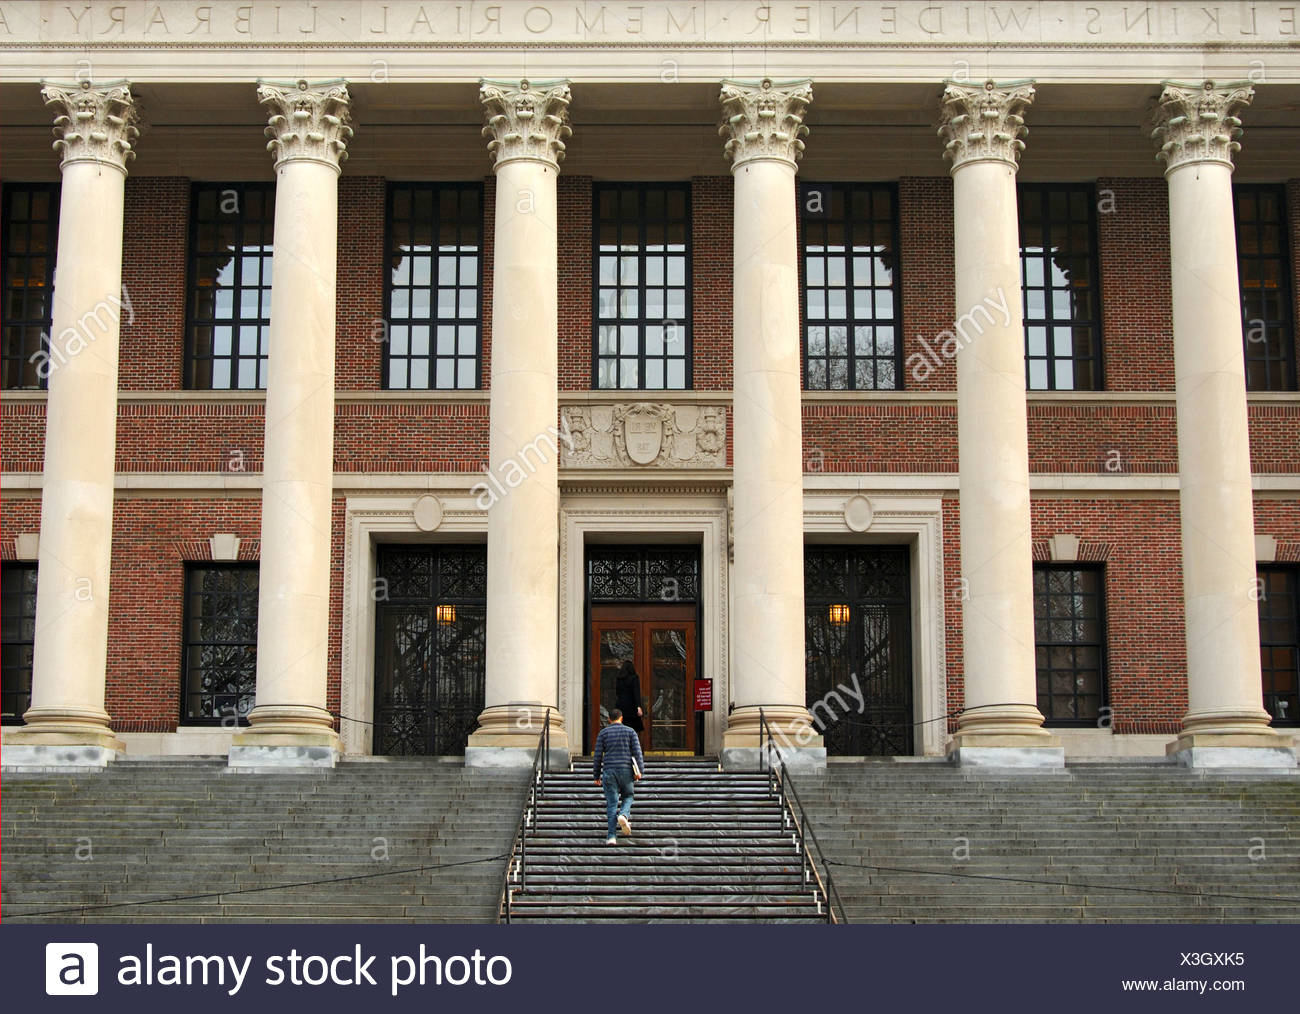 Students on their way to the Harry Elkins Widener Memorial Library, Harvard University, Cambridge, Massachusetts, USA - Stock Image